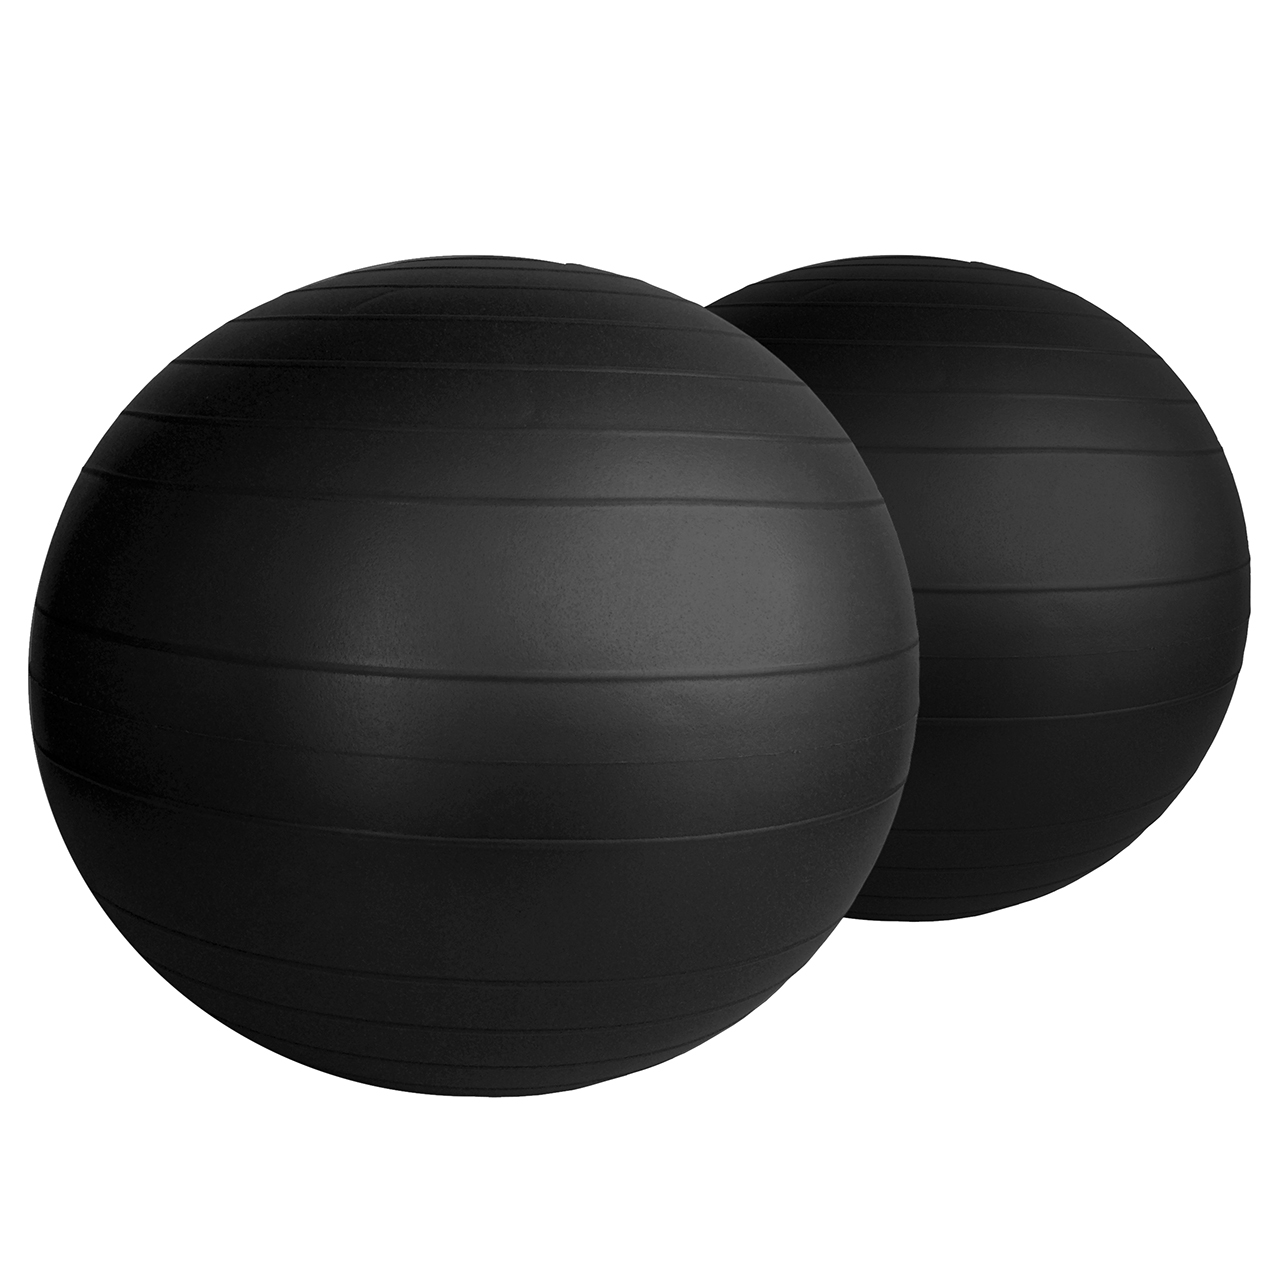 fitball balance ball chair rocking glider cushions aeromat adjustable fit msrp quality fitness